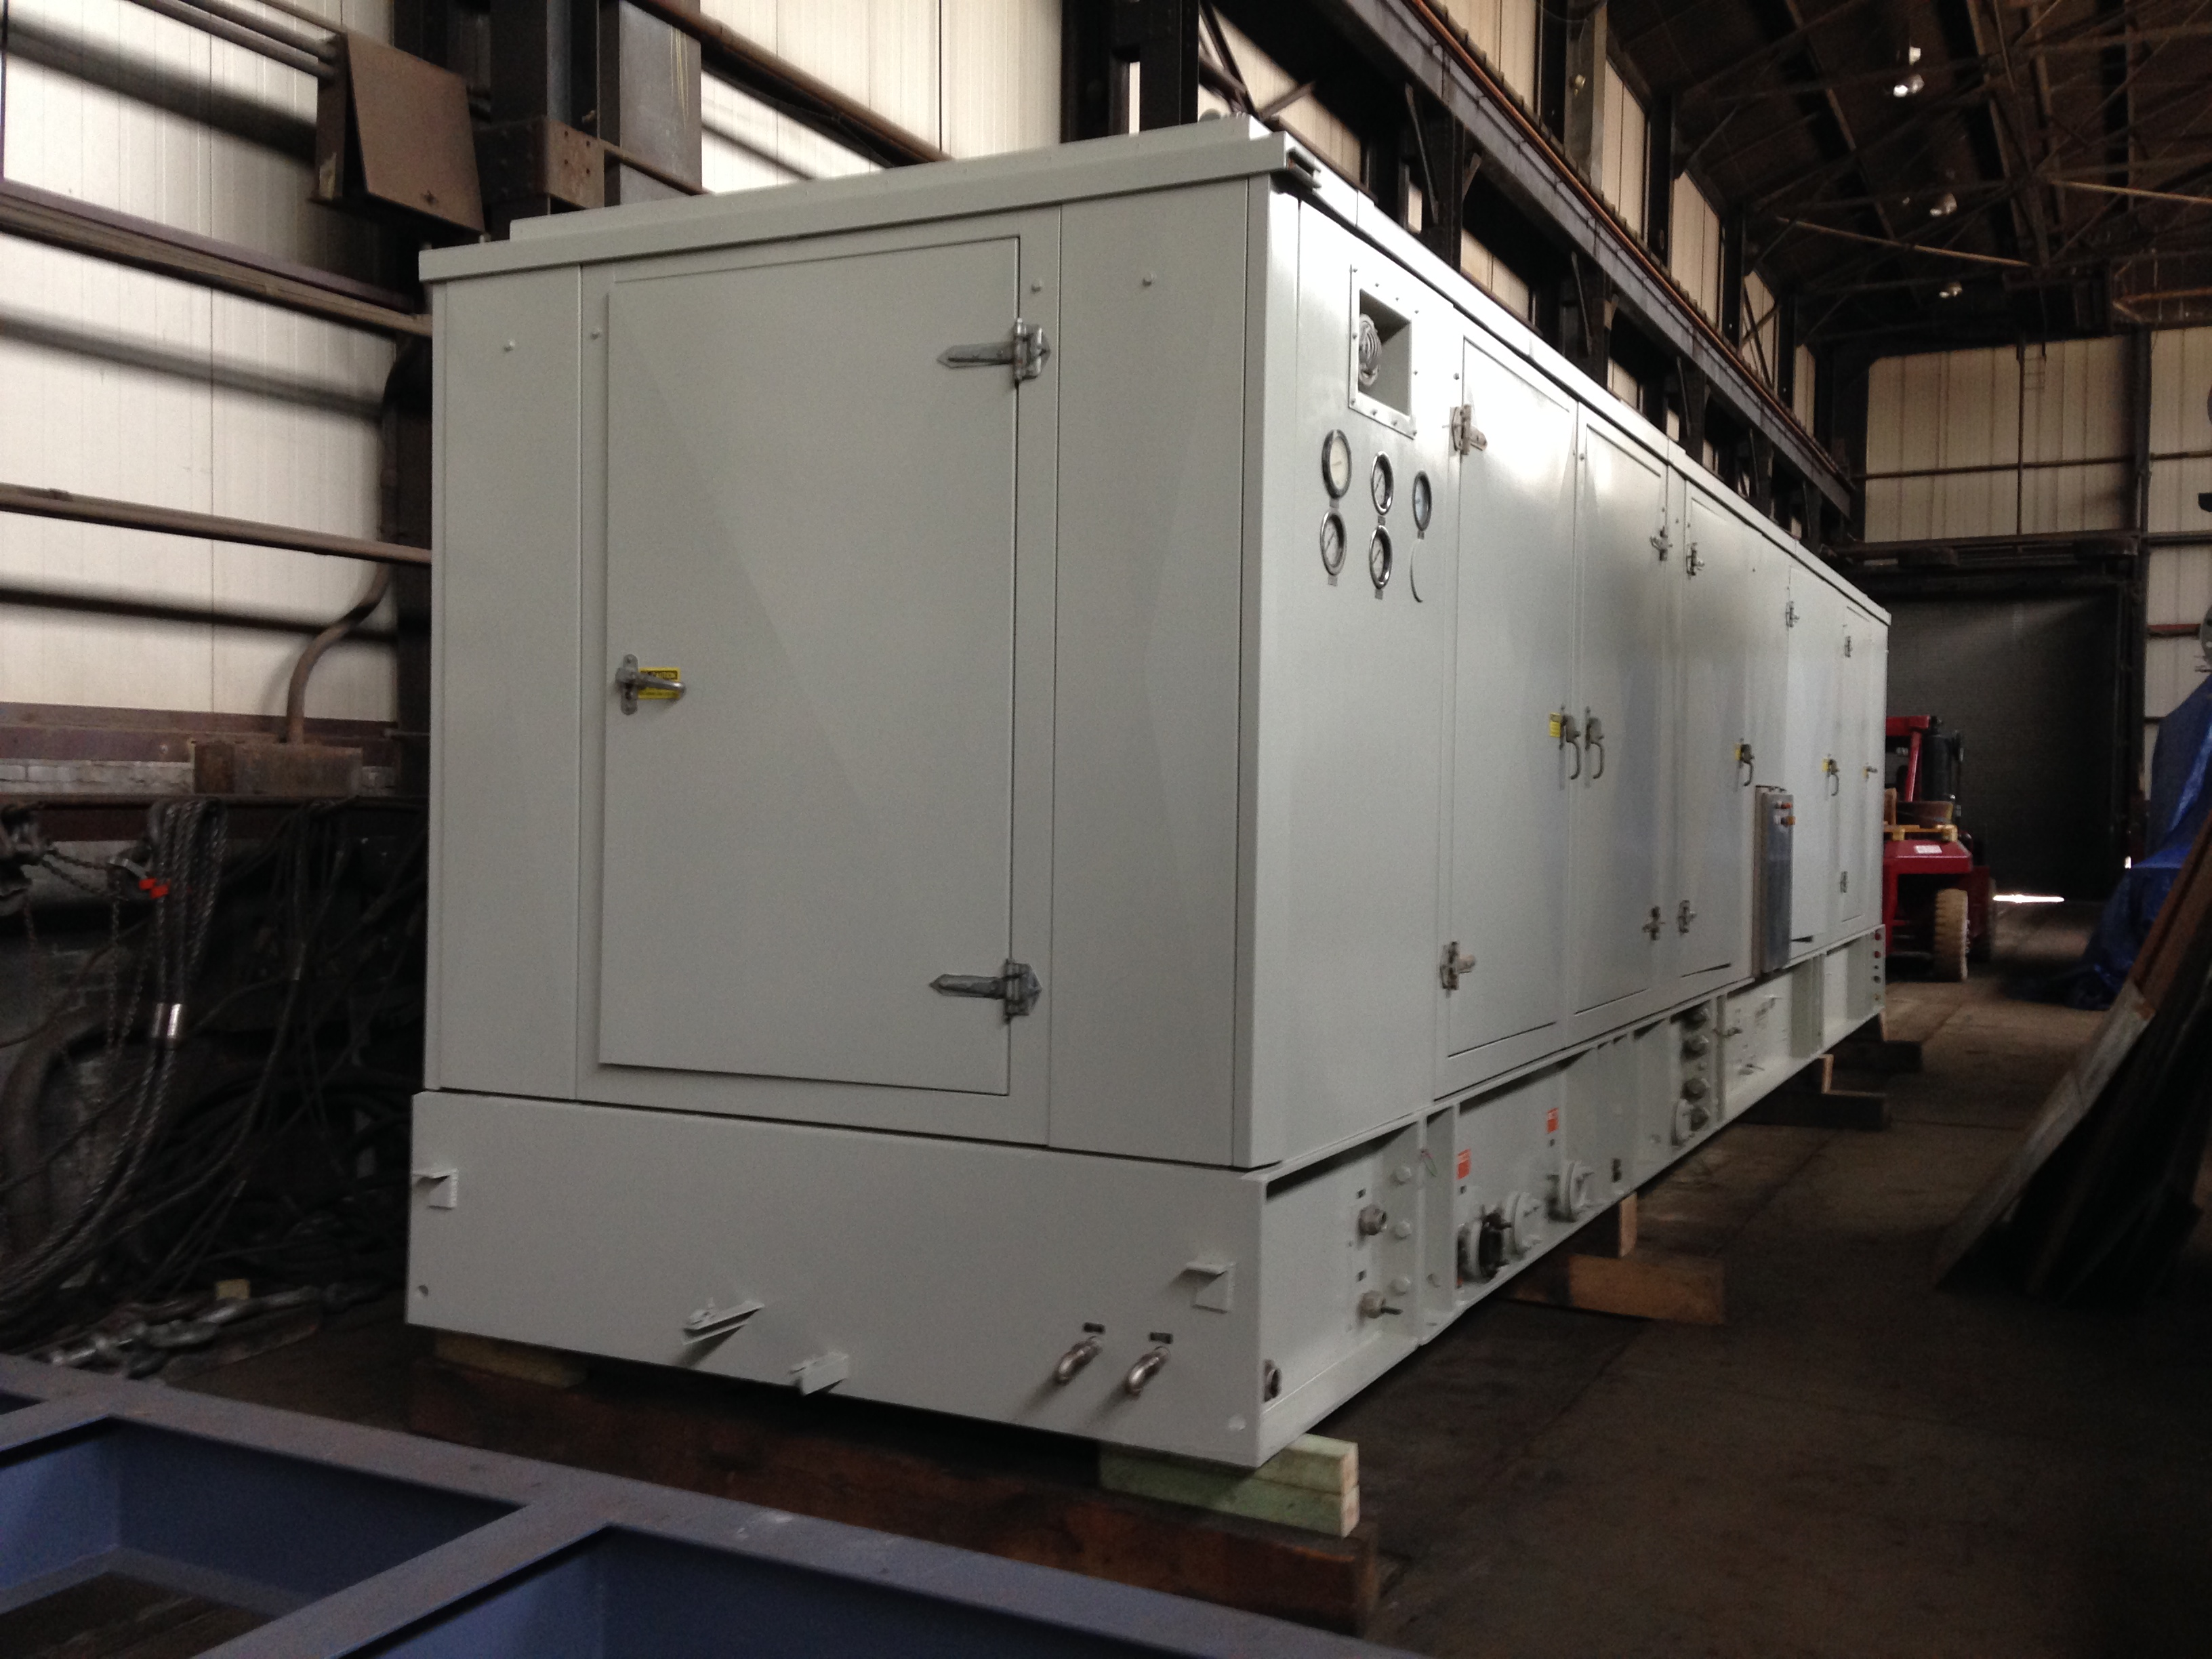 9450 kw Solar Mars 90 Gas Turbine Generating Set